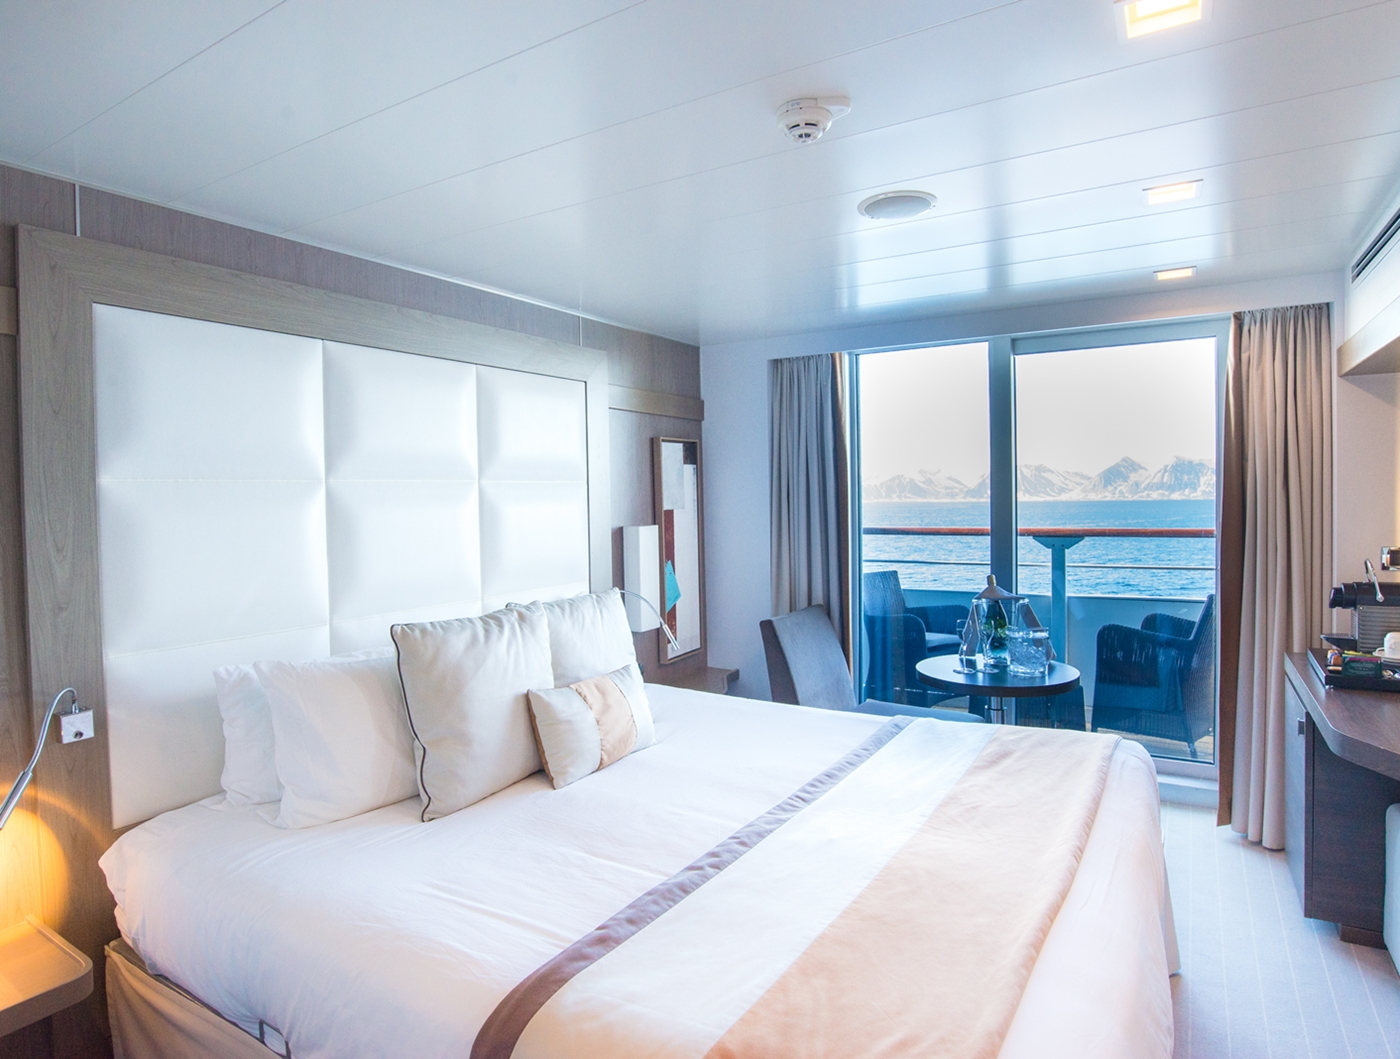 albatross room with balcony view1400